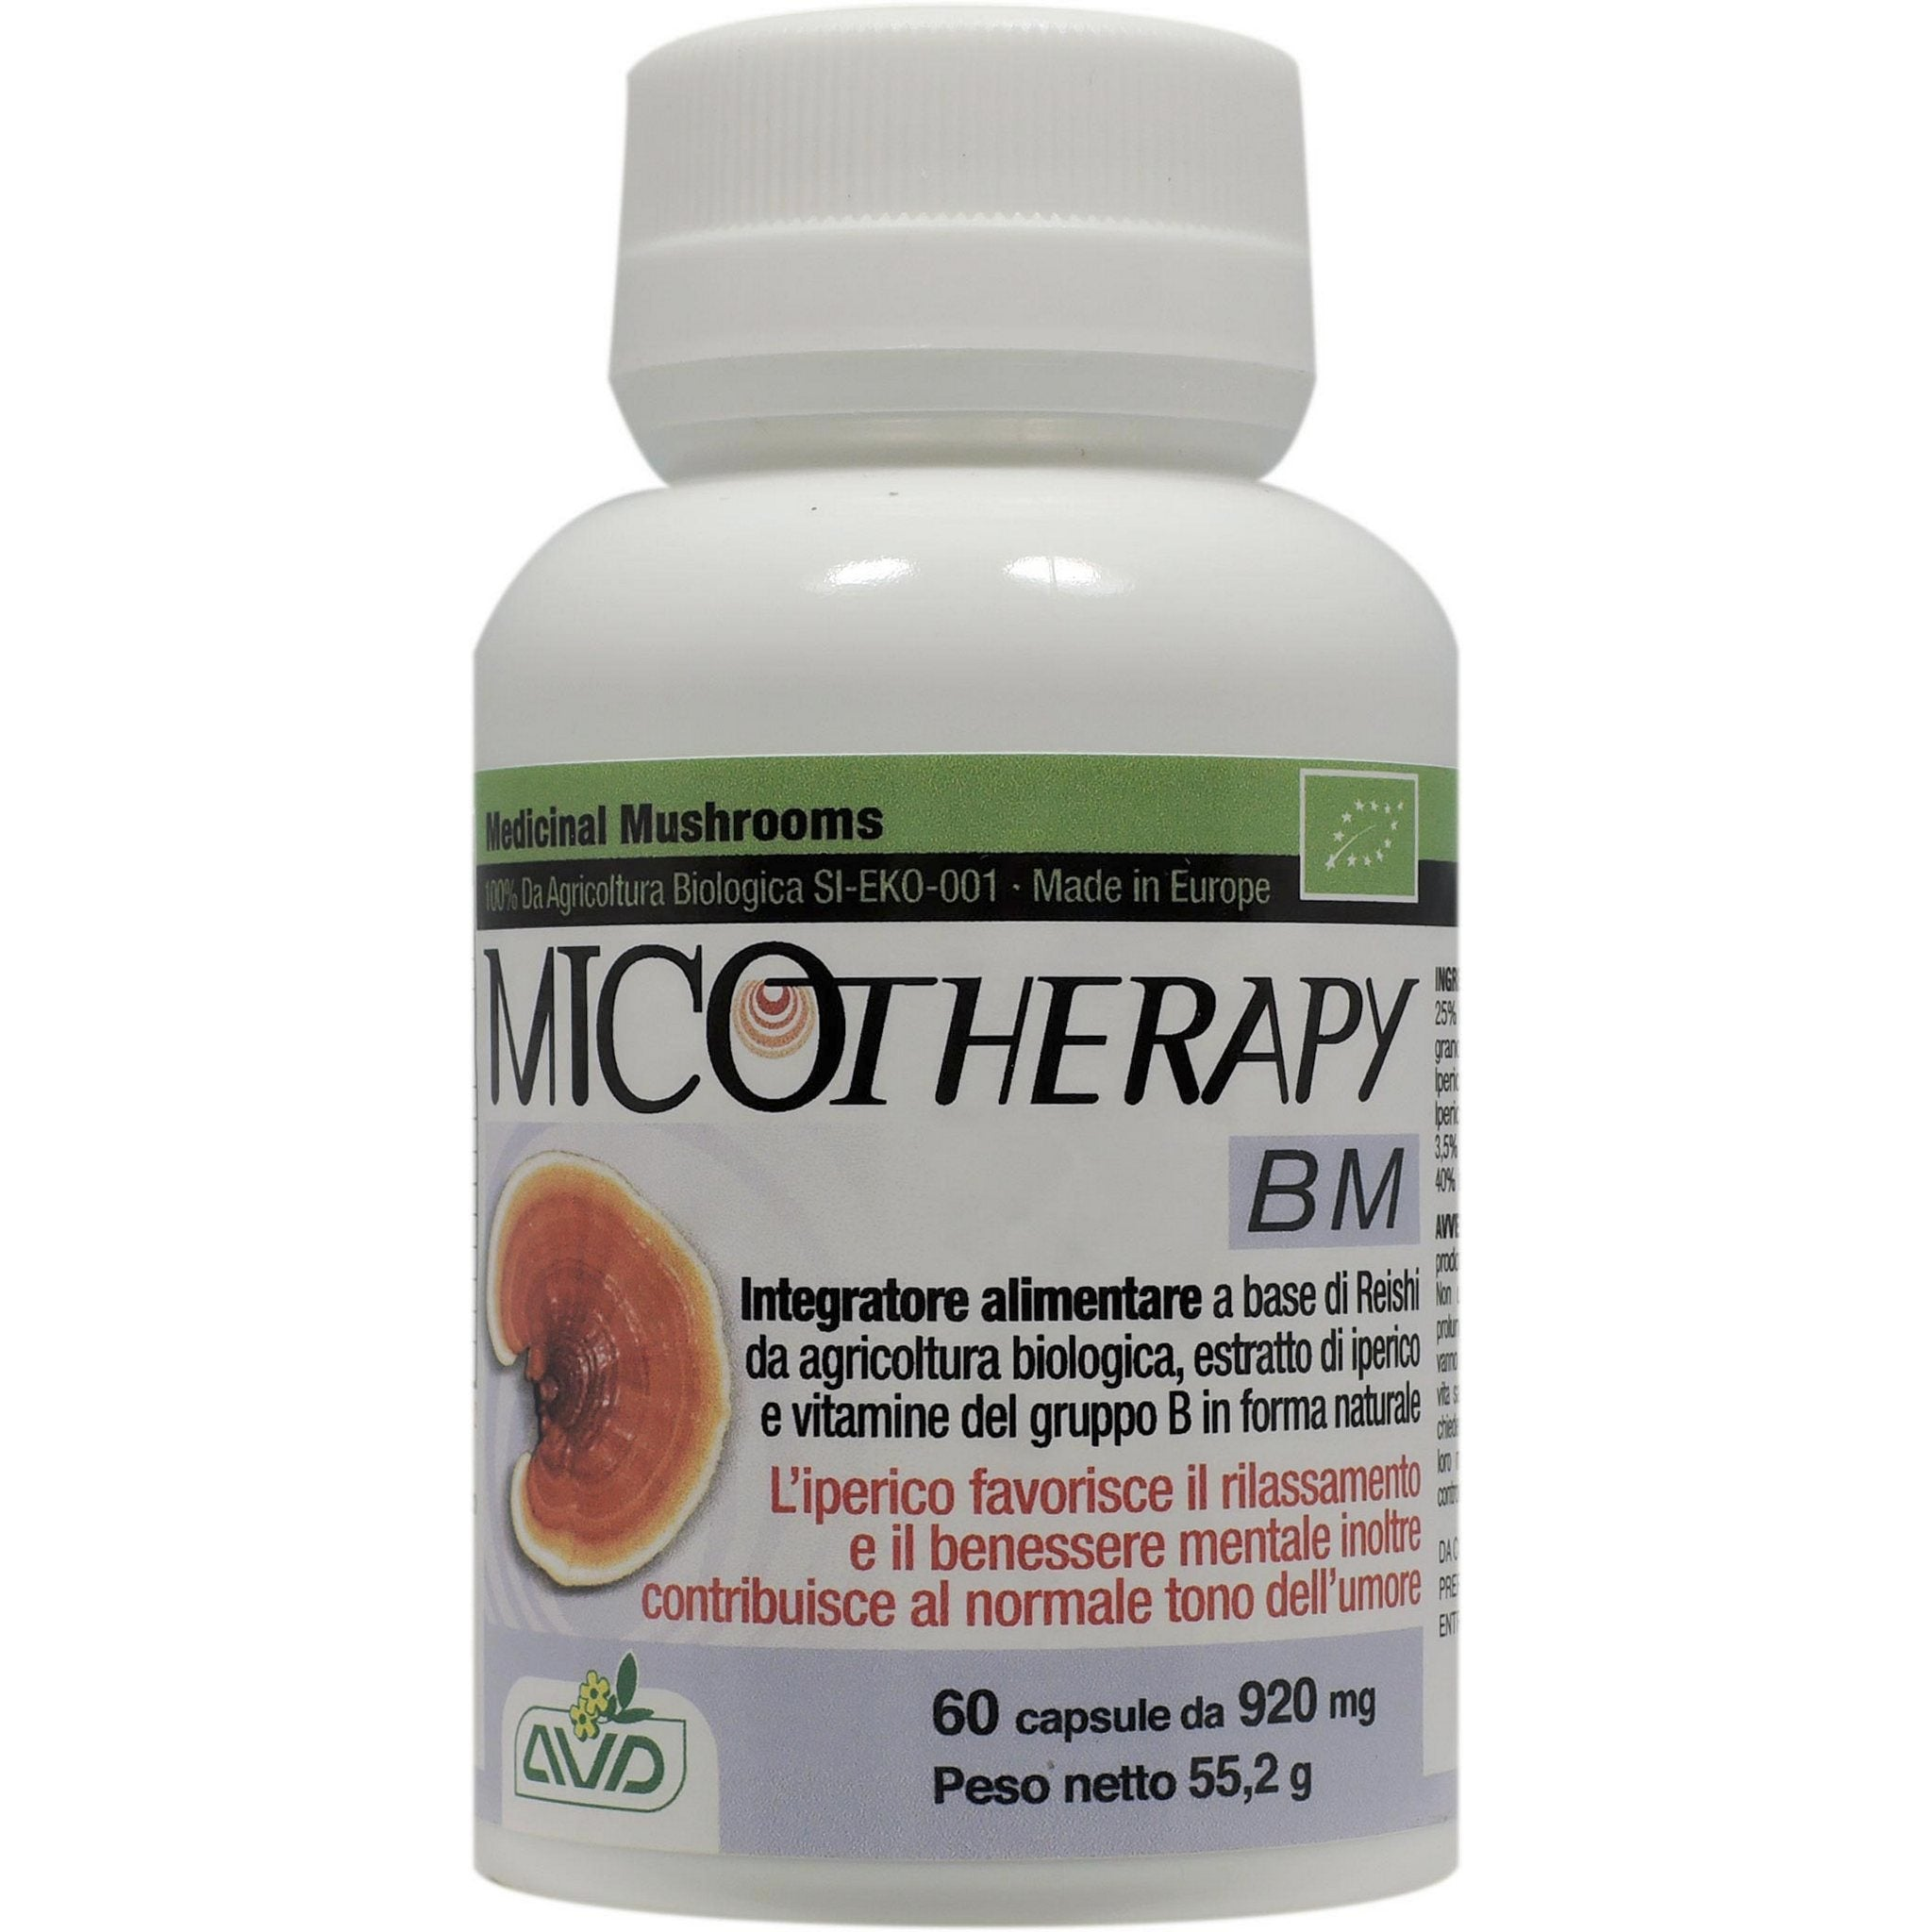 MICOTHERAPY BM 60 CAPSULE